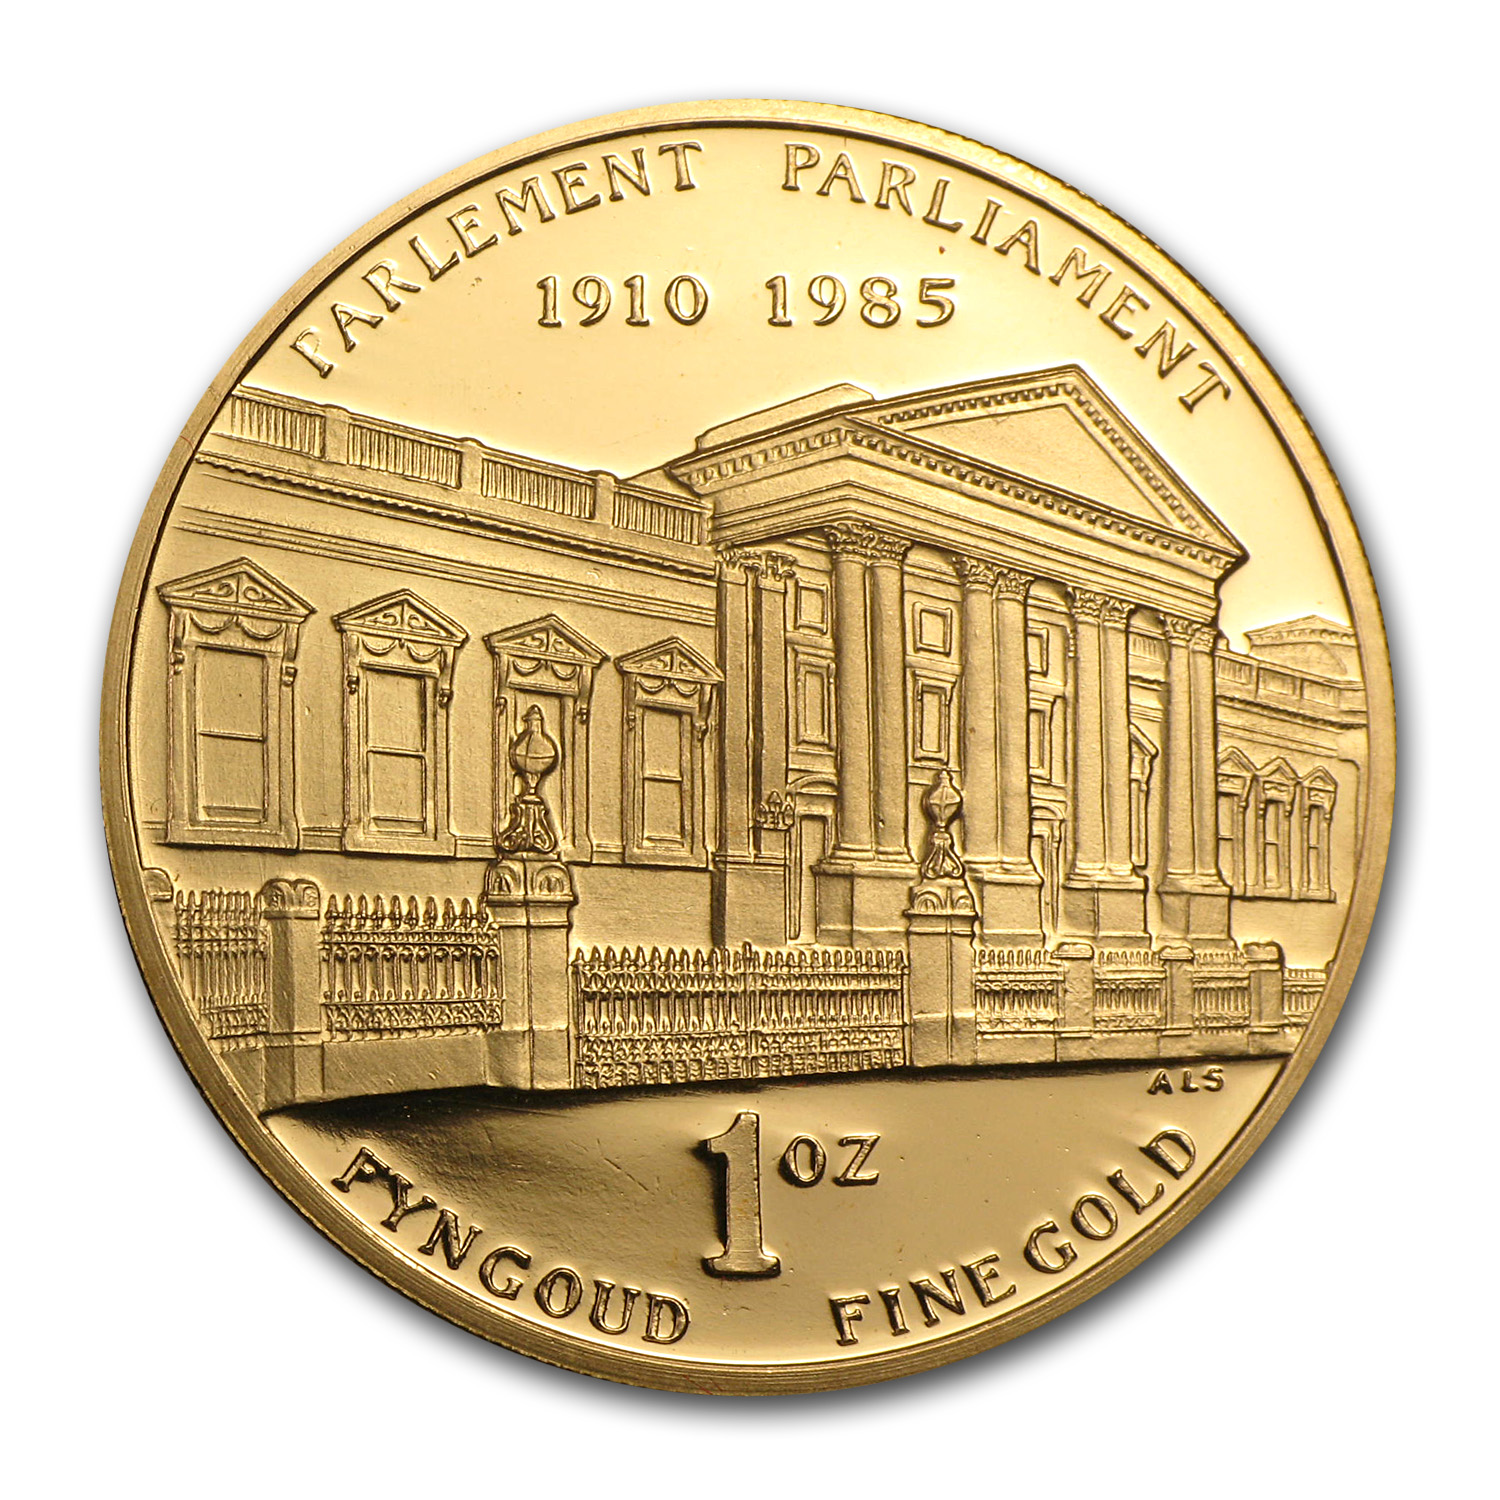 1985 South Africa 1 oz Proof Gold 75th Anniv of Parliament